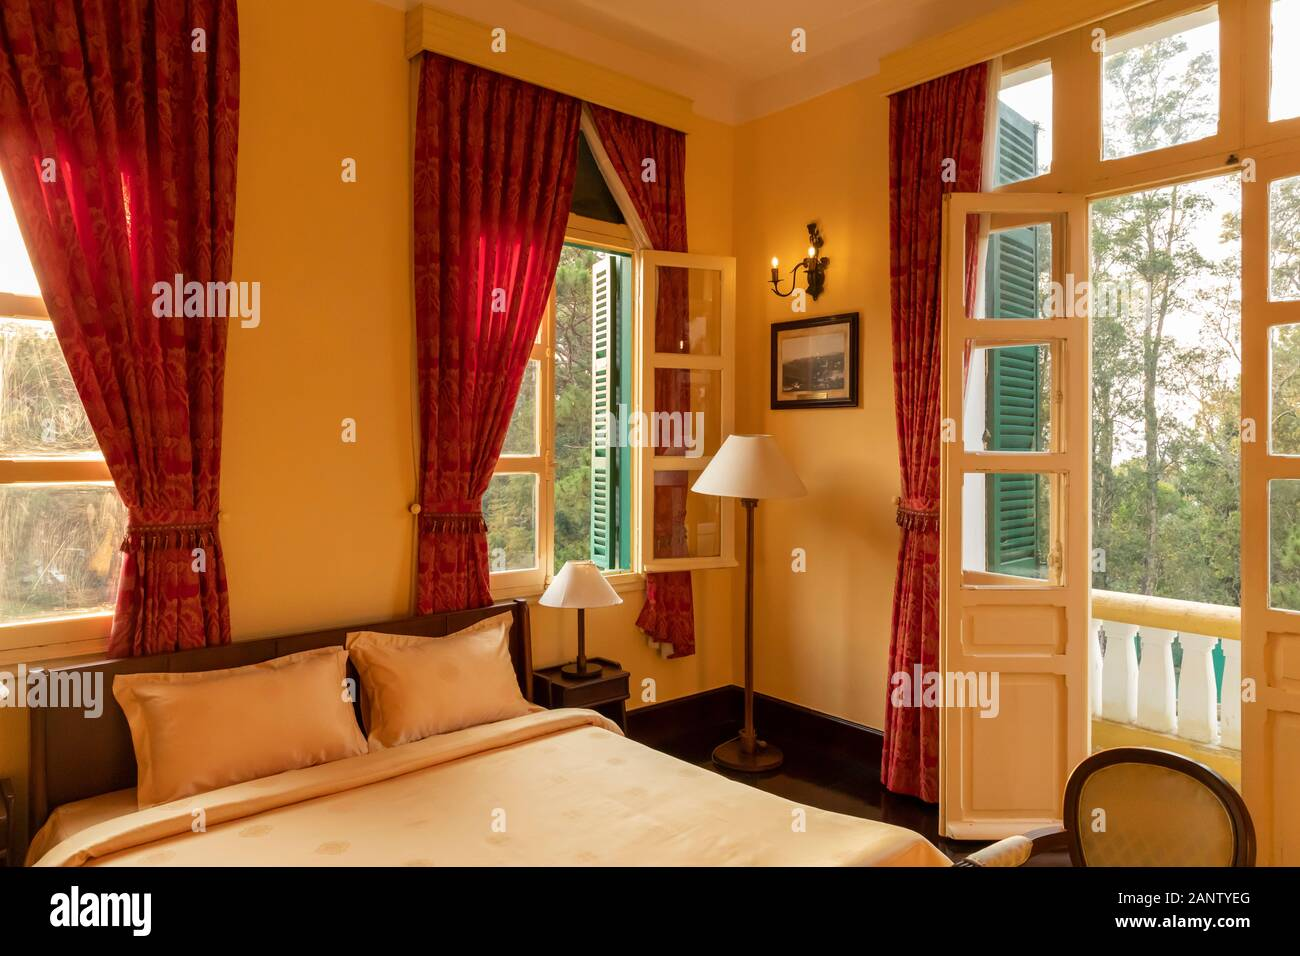 Interior Of French Colonial House Featuring A Beautiful Bedroom In Afternoon Light With Original Furniture Stock Photo Alamy